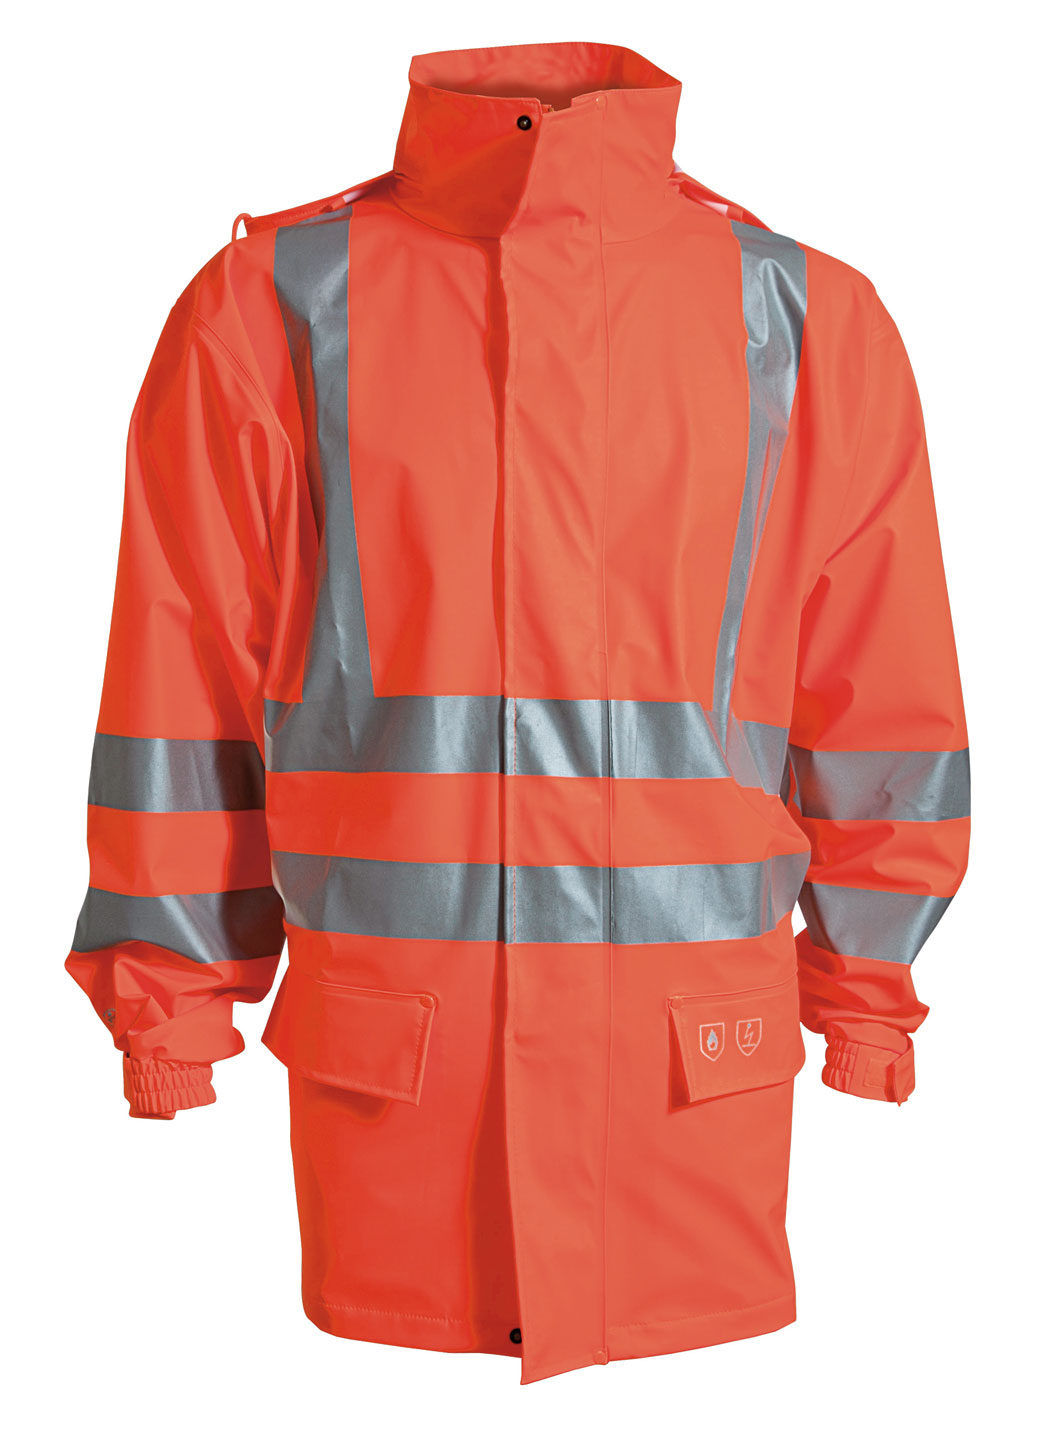 Antiflame / Antistatic Resistant Clothing